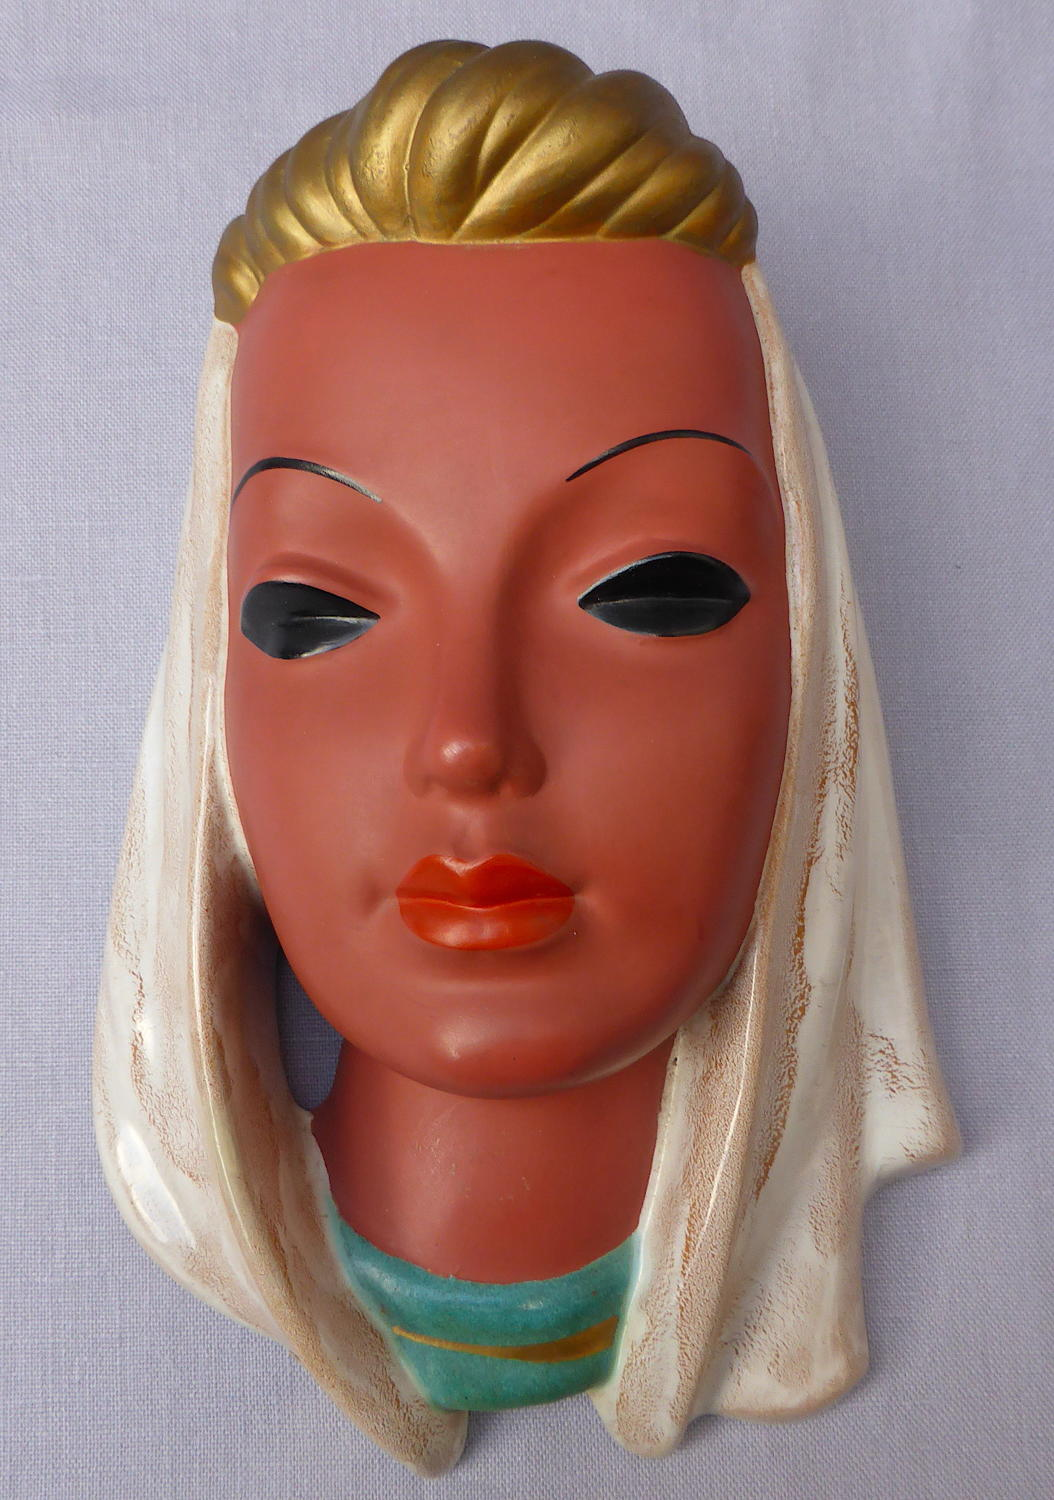 1950s Goldscheider ceramic wall mask by Adolf Prischl